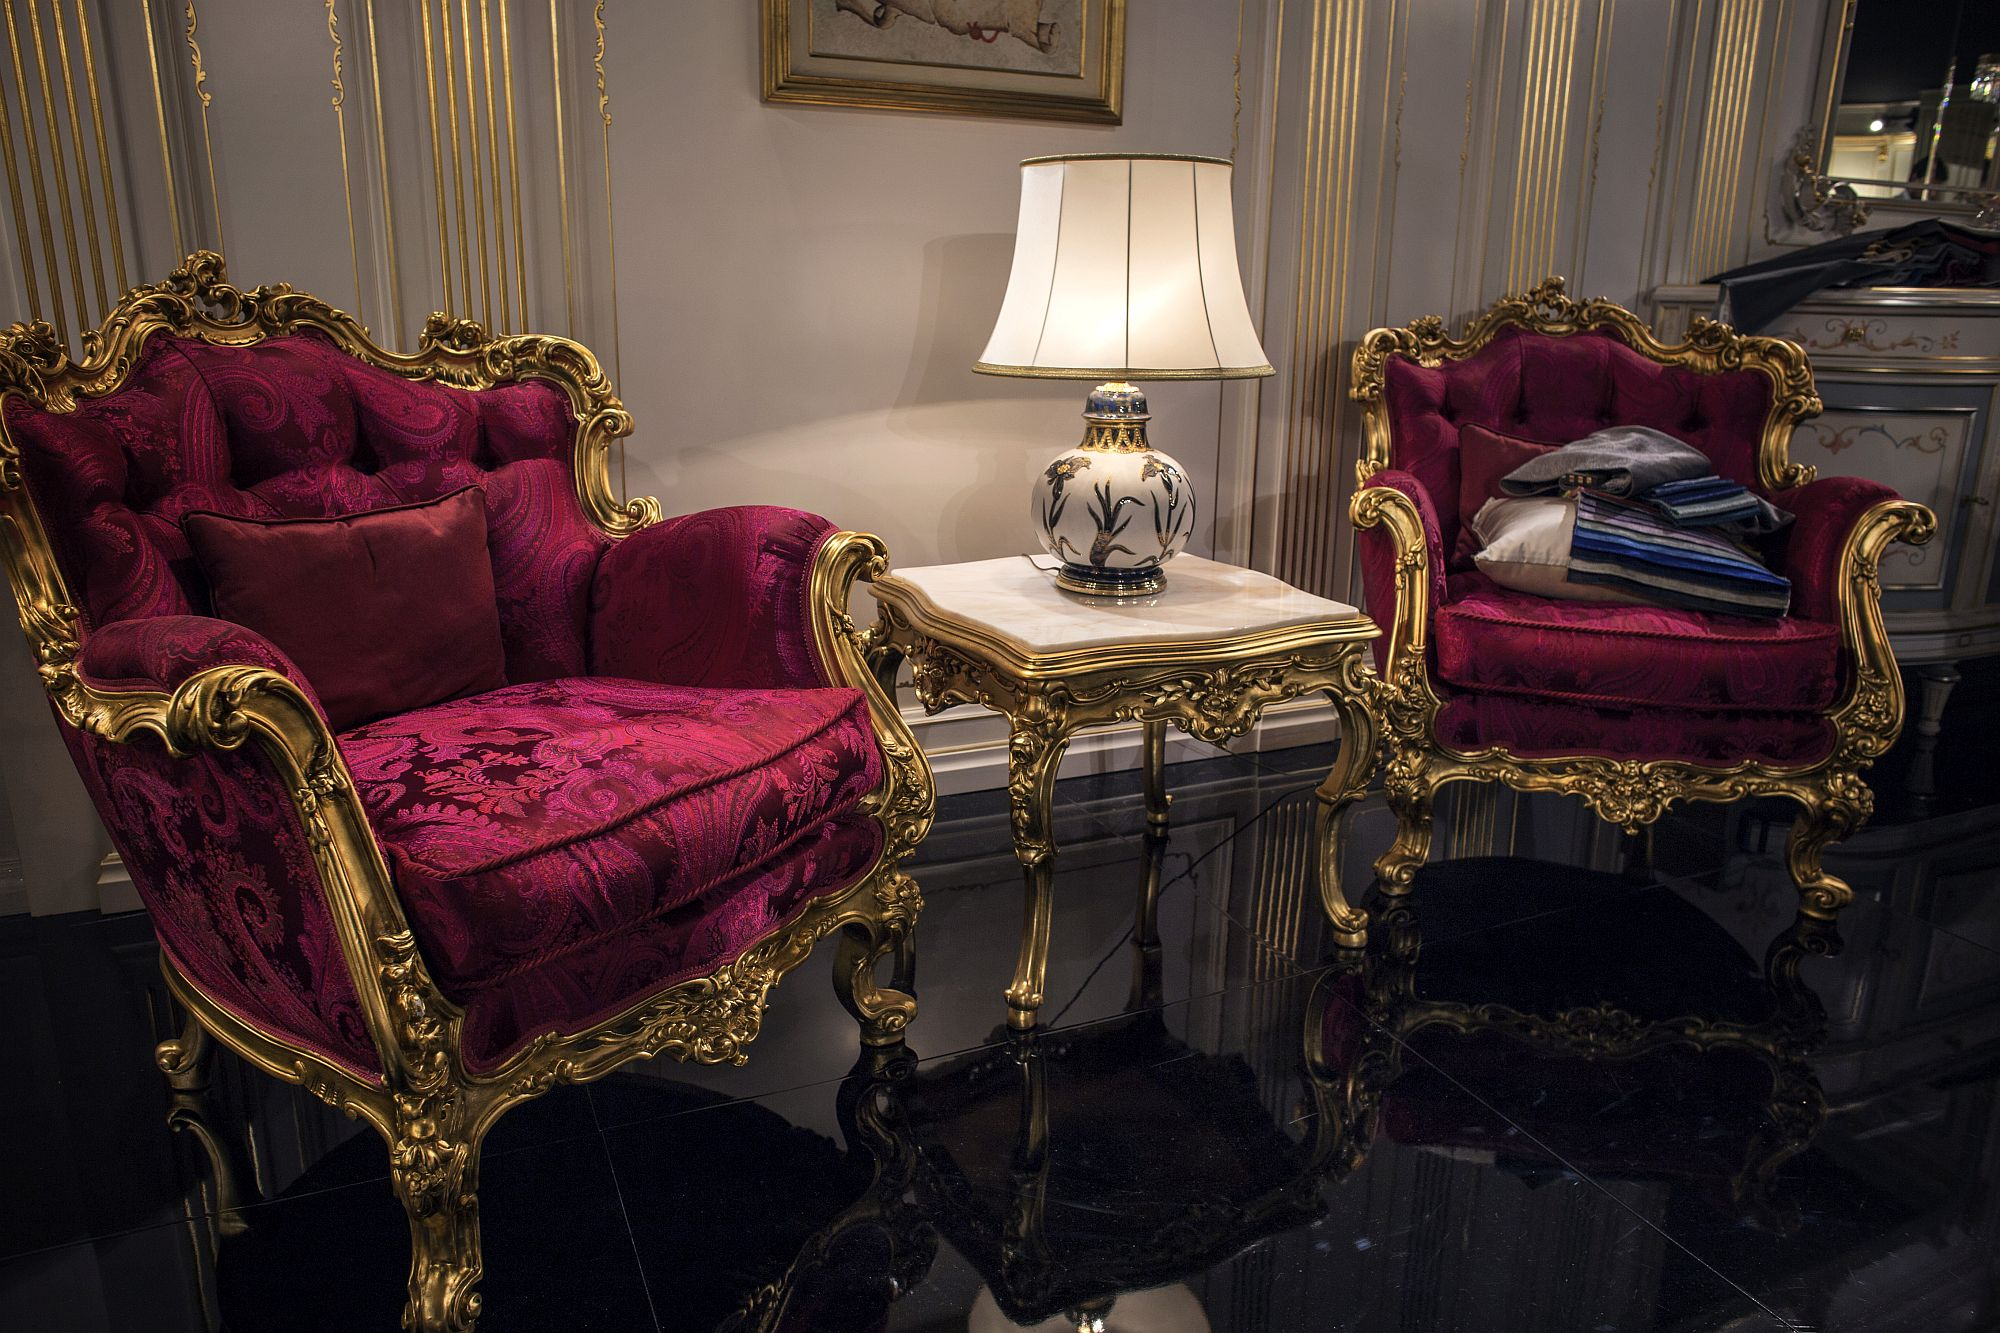 Beautiful-table-lamp-small-side-table-and-regal-chairs-create-a-traditional-conversation-nook